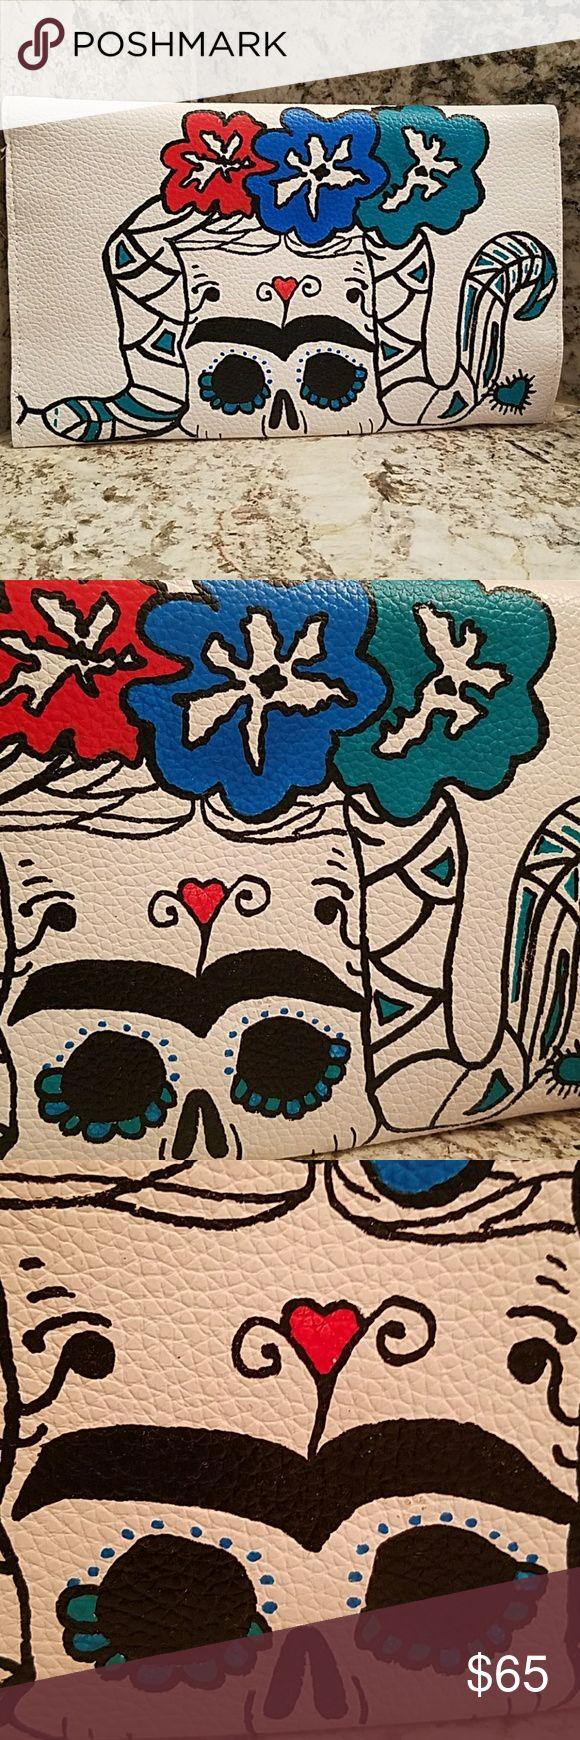 "Frida Kahlo Day of the Dead  Sugar Skull Clutch Frida Kahlo Sugar Skull clutch is a handpainted piece of wearable art. It is vegan leather  in white with goldtone hardware clasp.   The envelope closure reads ""Me entenderas"" which translates to ""you will understand me"" and the inside of the flap has a hidden message which reads, ""Cuando te duele el alma como a mi.""  That translates to "" when your soul hurts like mine."" This is a Frida Kahlo quote. Her initials are painted below the quote to…"